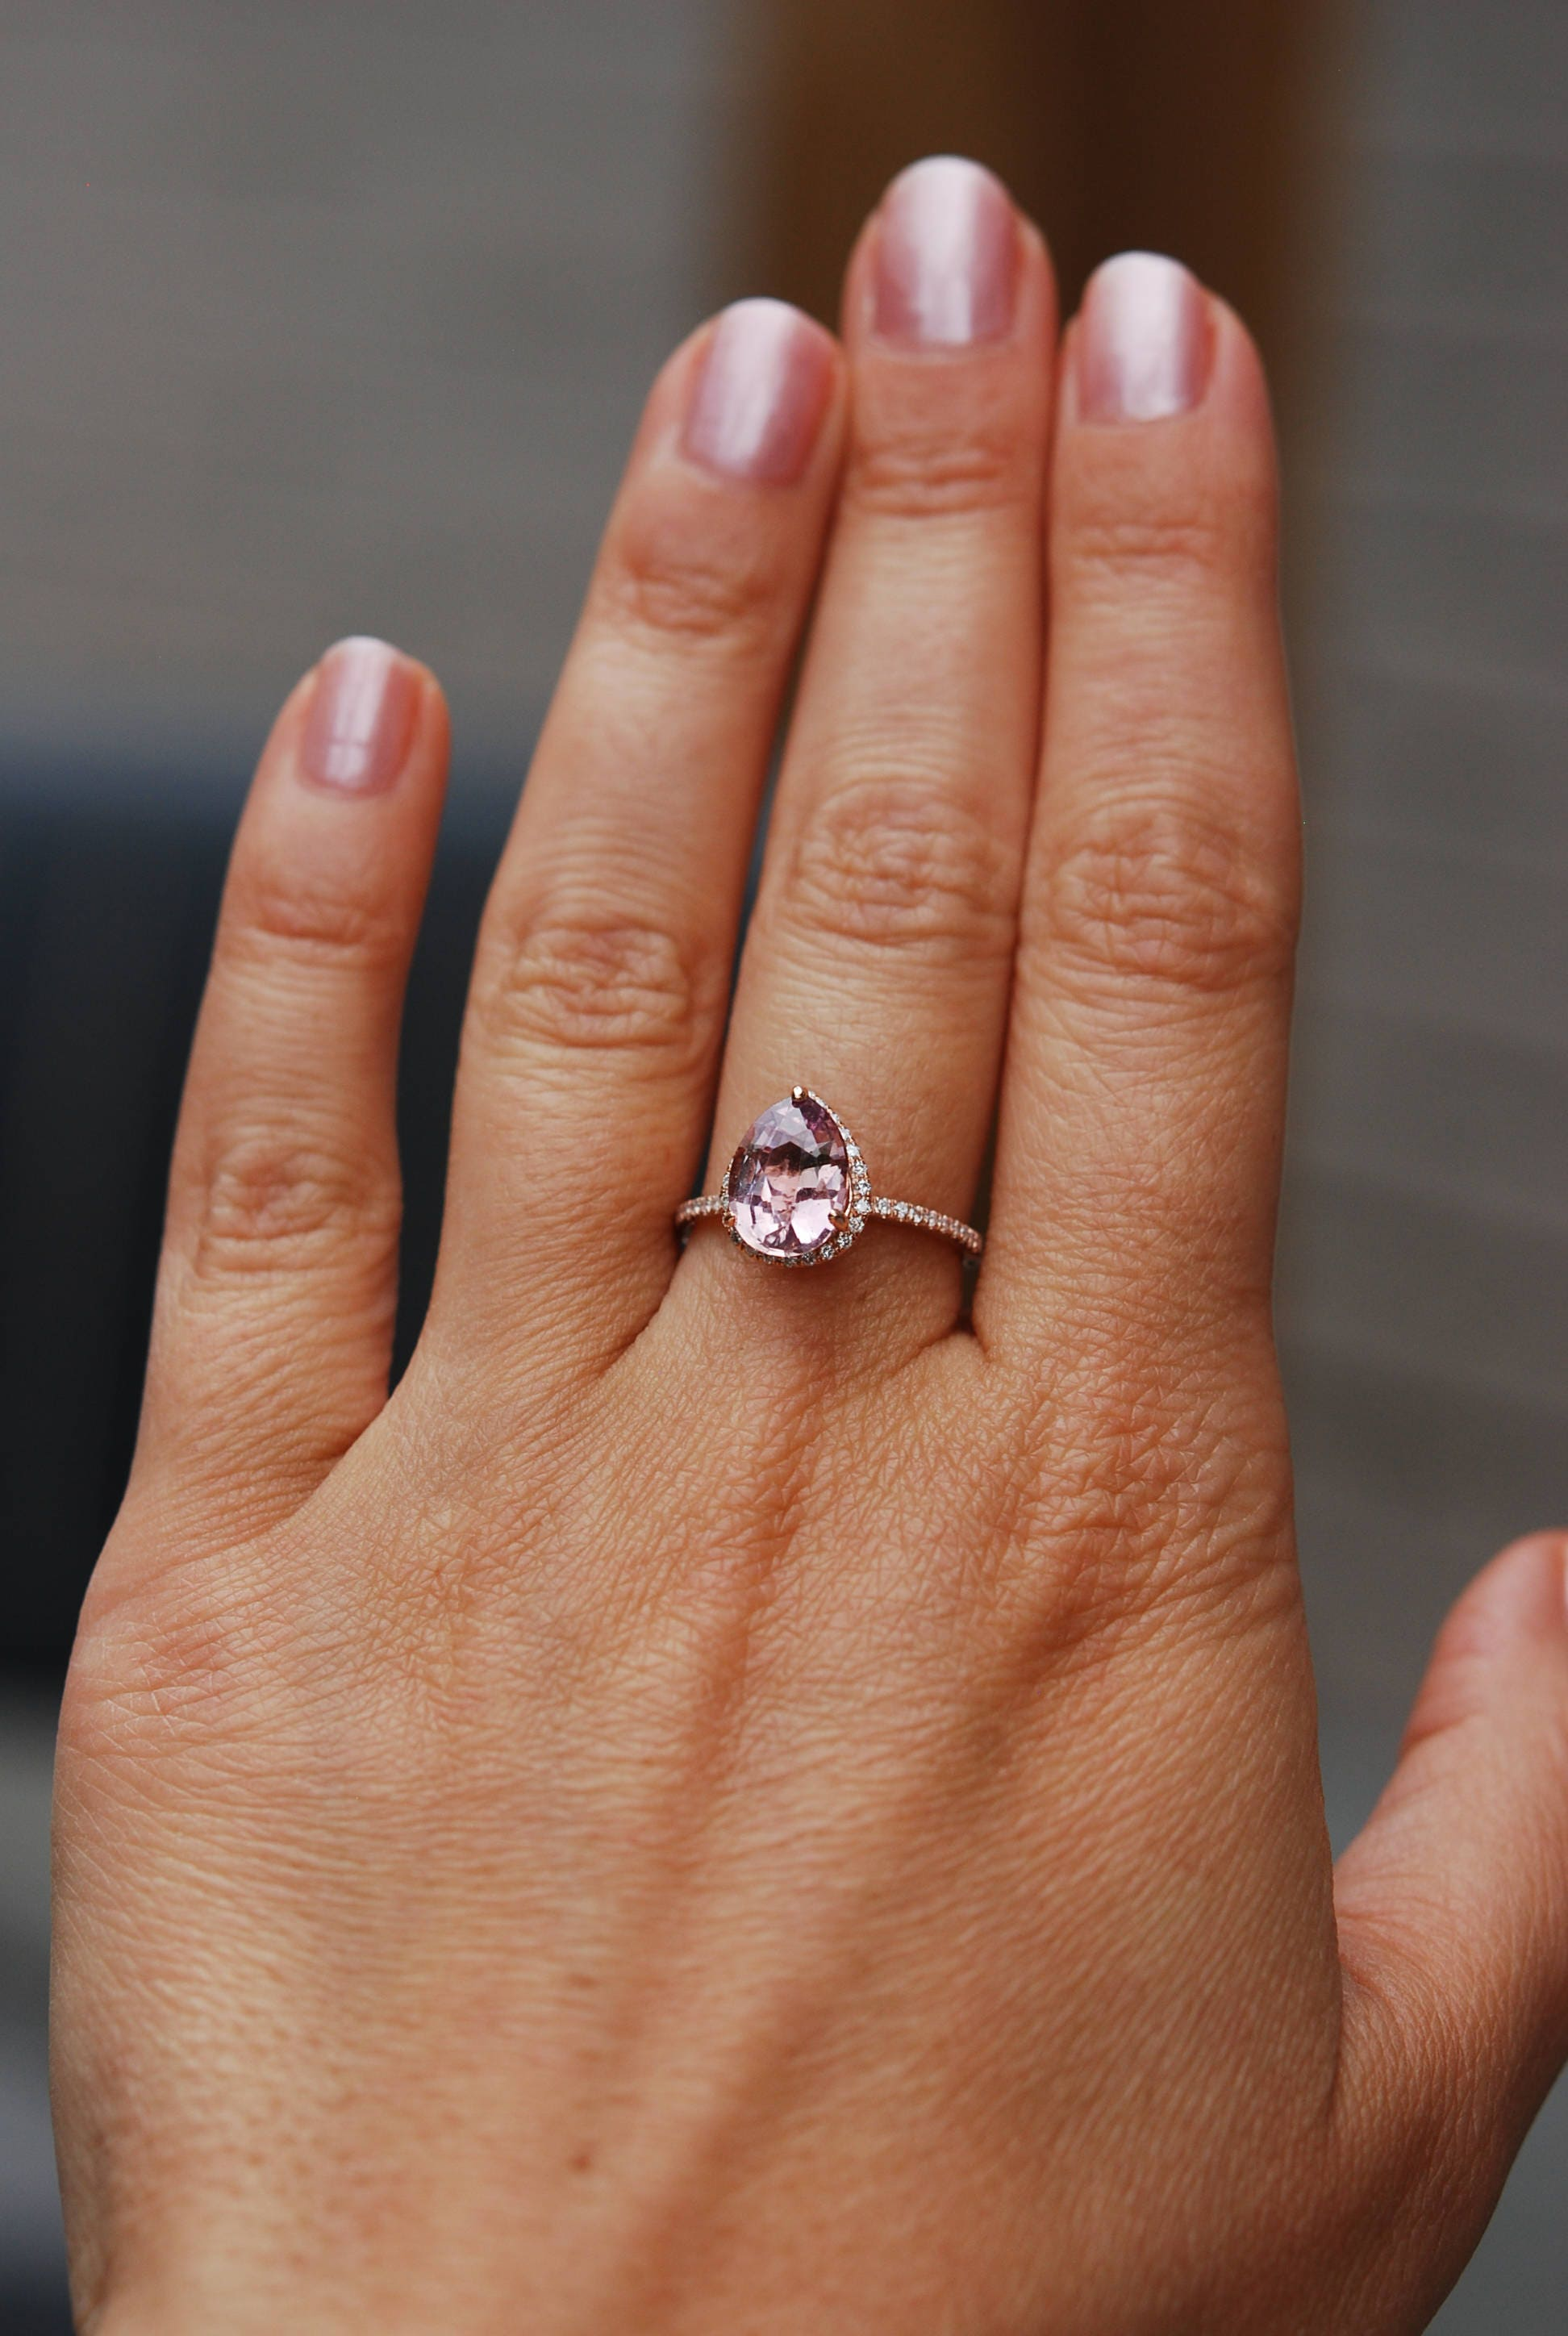 Peach sapphire engagement ring Rose gold engagement ring 2 44ct